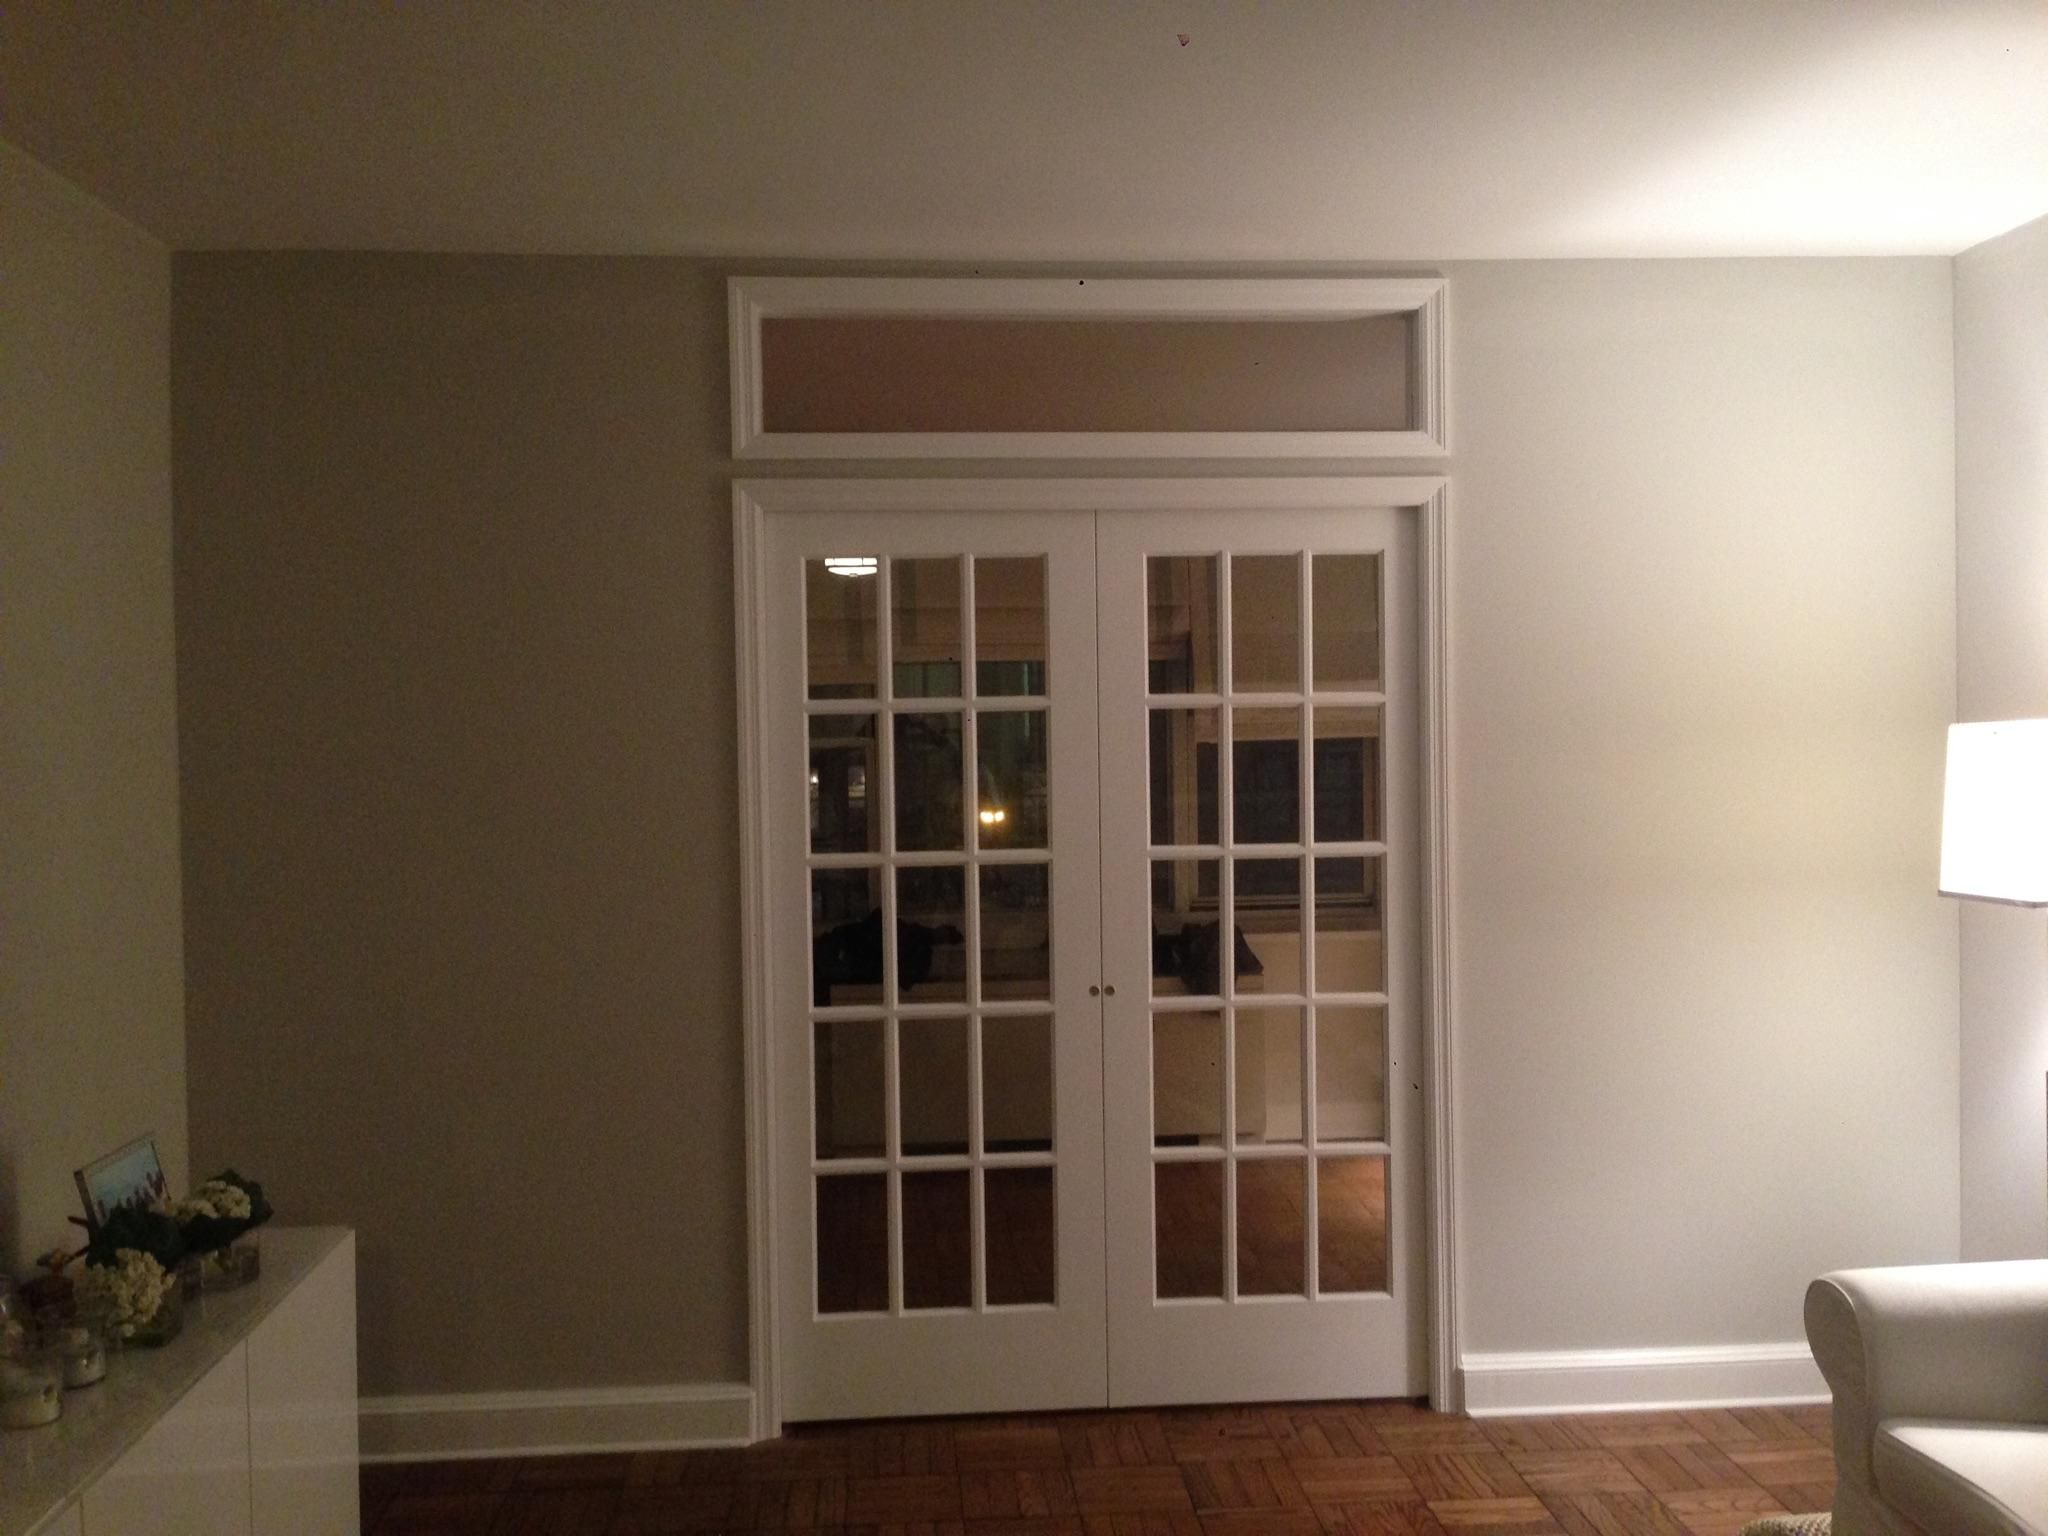 Custom temporary wall system with double French doors and borrowed light window we recently installed in NYC apartment. For more information and free ... : doors nyc apartment - pezcame.com